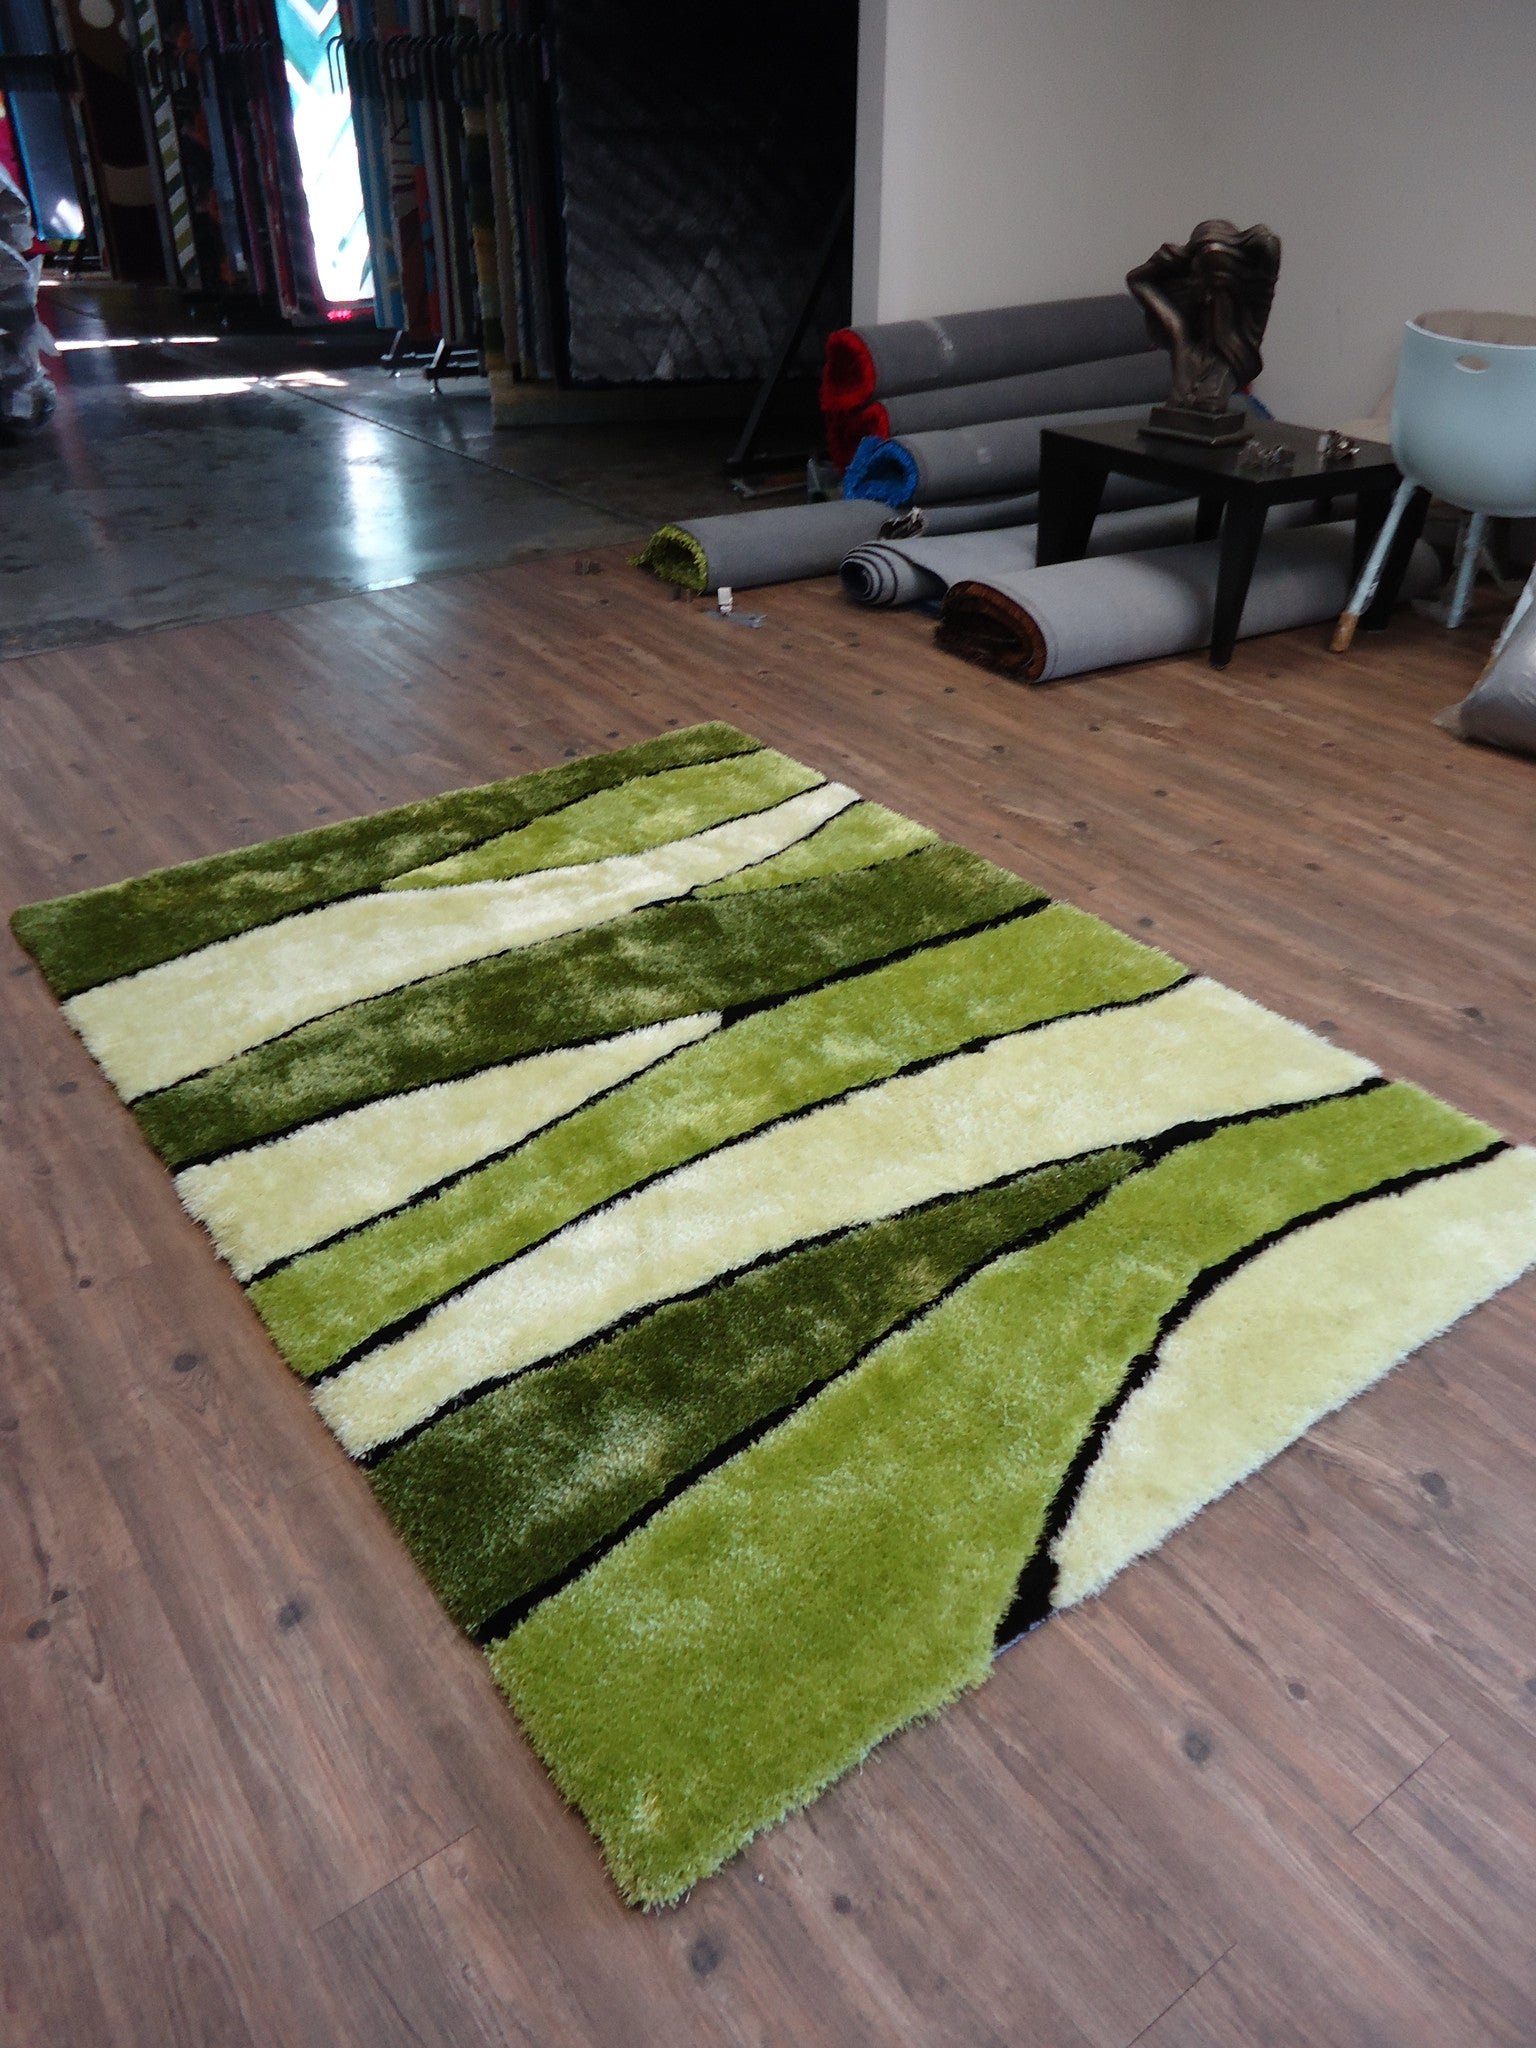 ... 2 Piece Set | Handmade Vibrant Green Shag Area Rug With Hand Carved  Design With ...